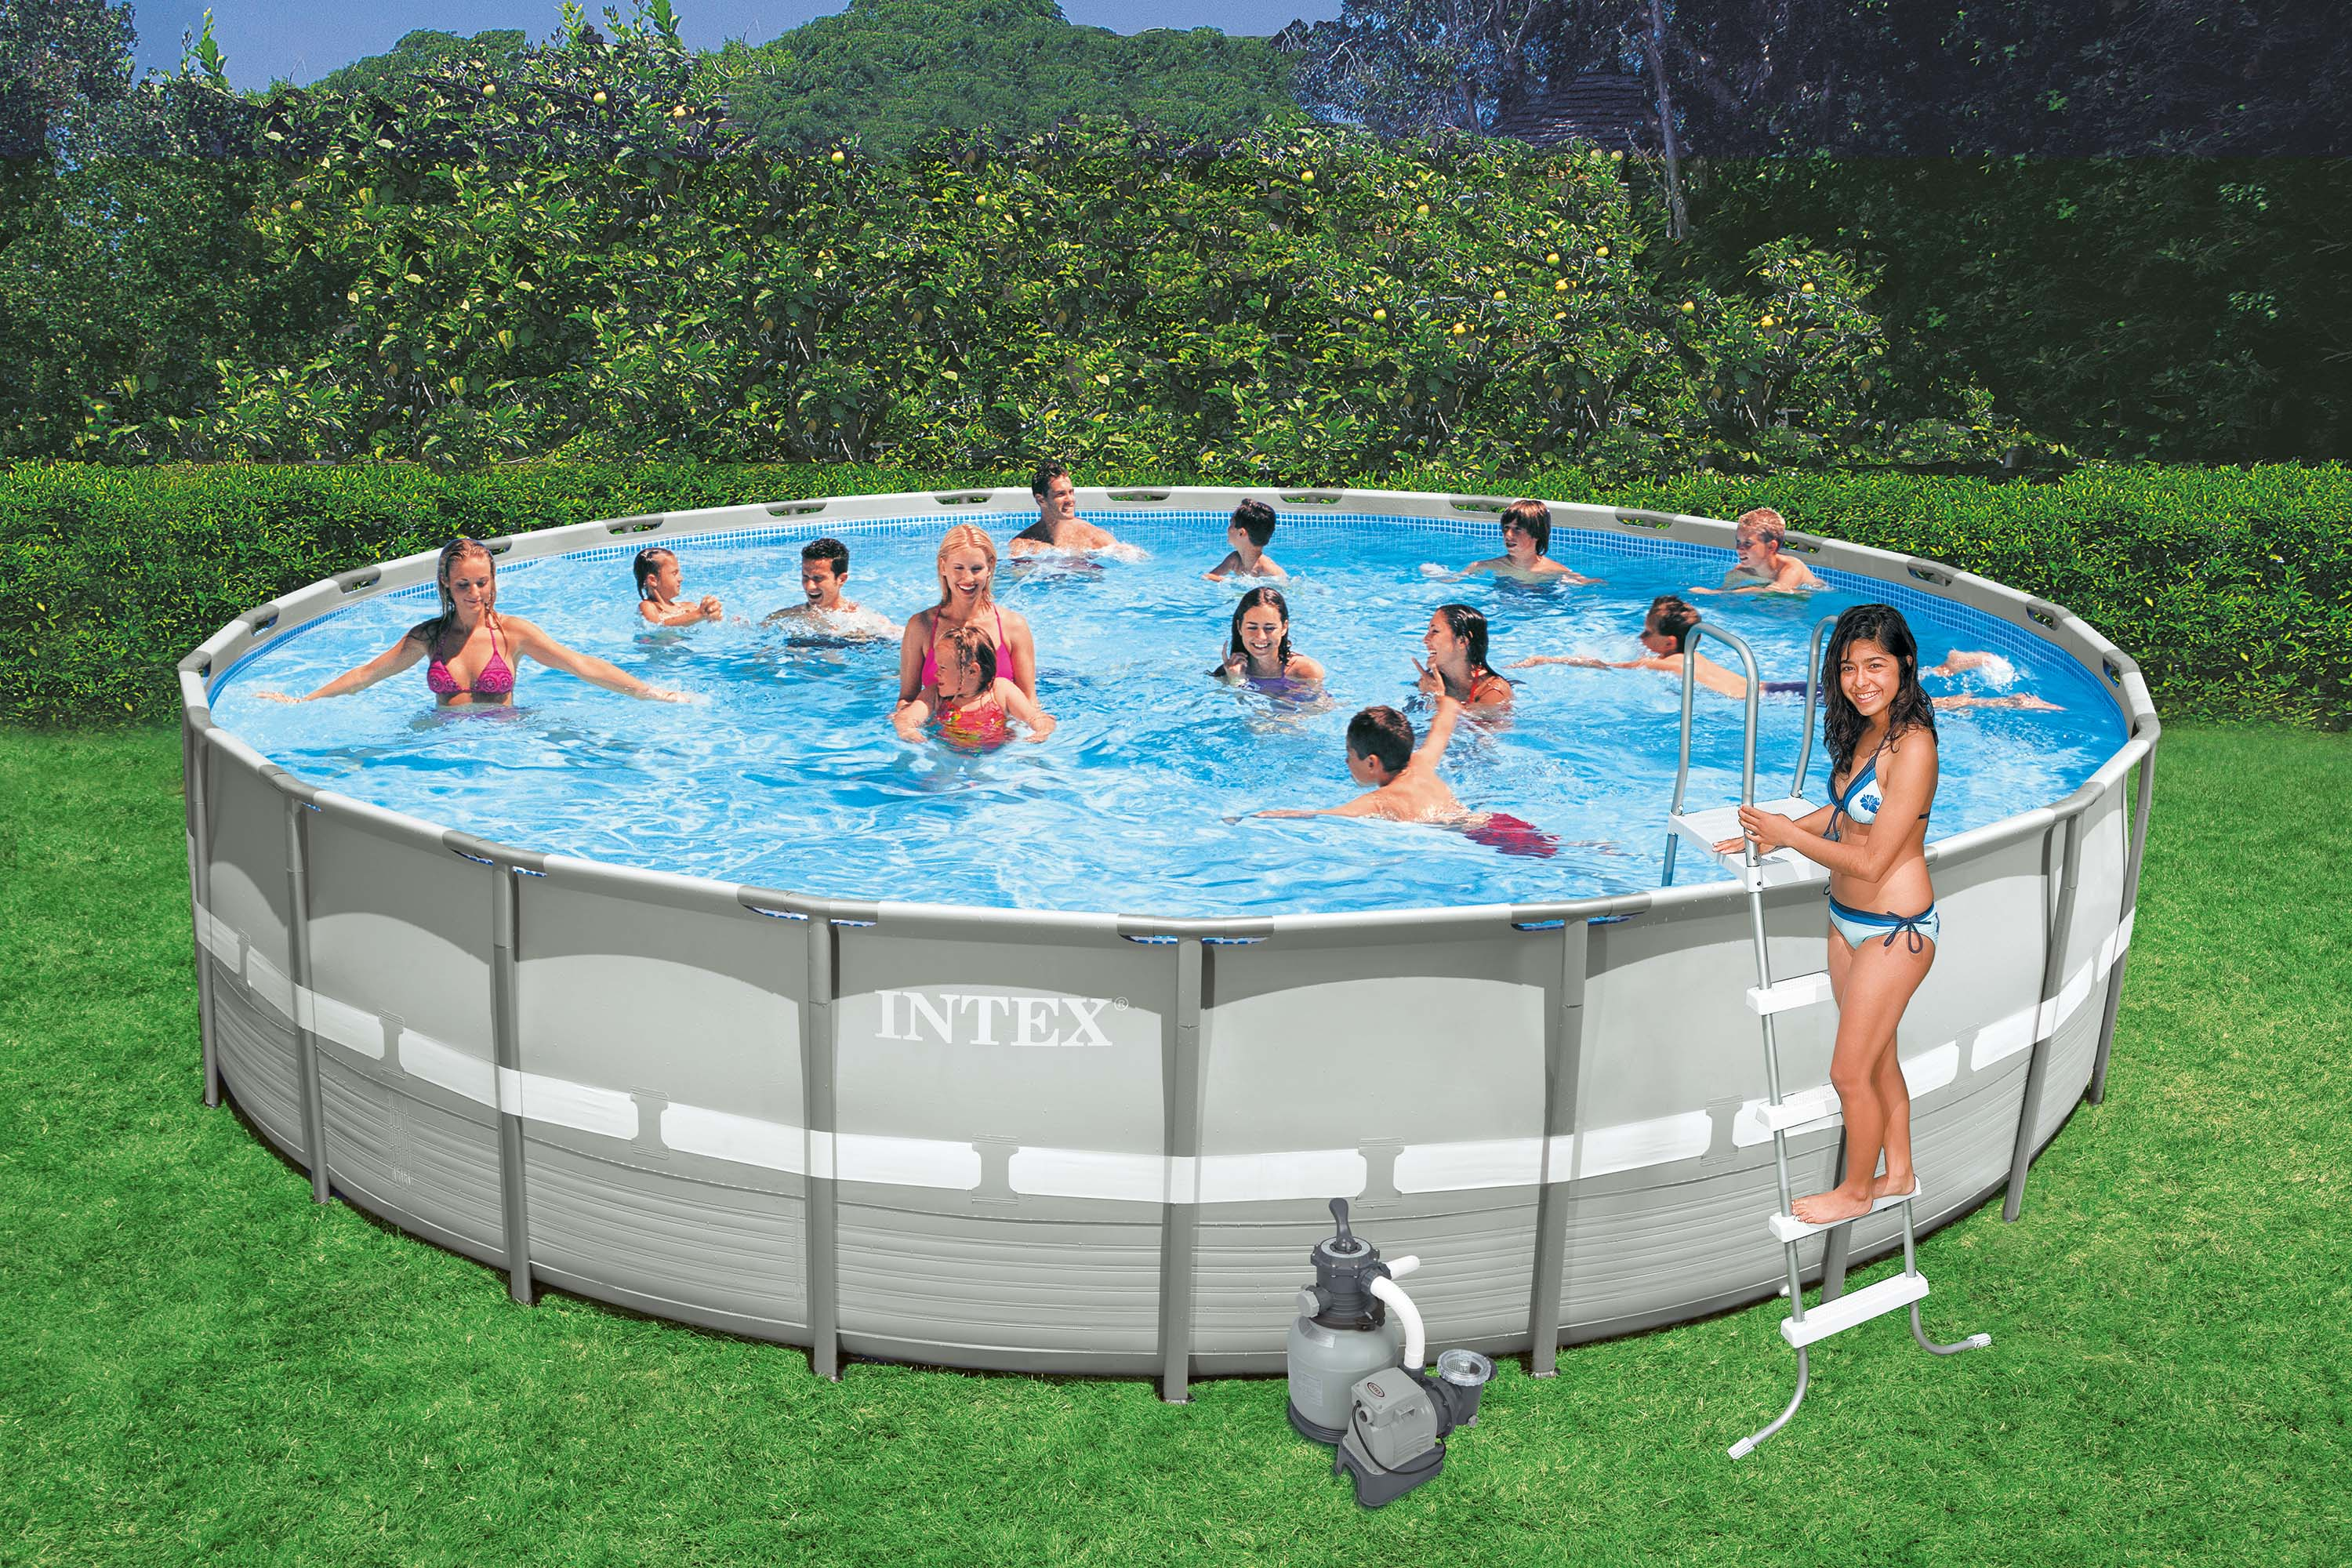 Pool Im Garten Intex Garten Pool Intex Gallery Of Der Intex Easy Set Pools Mit